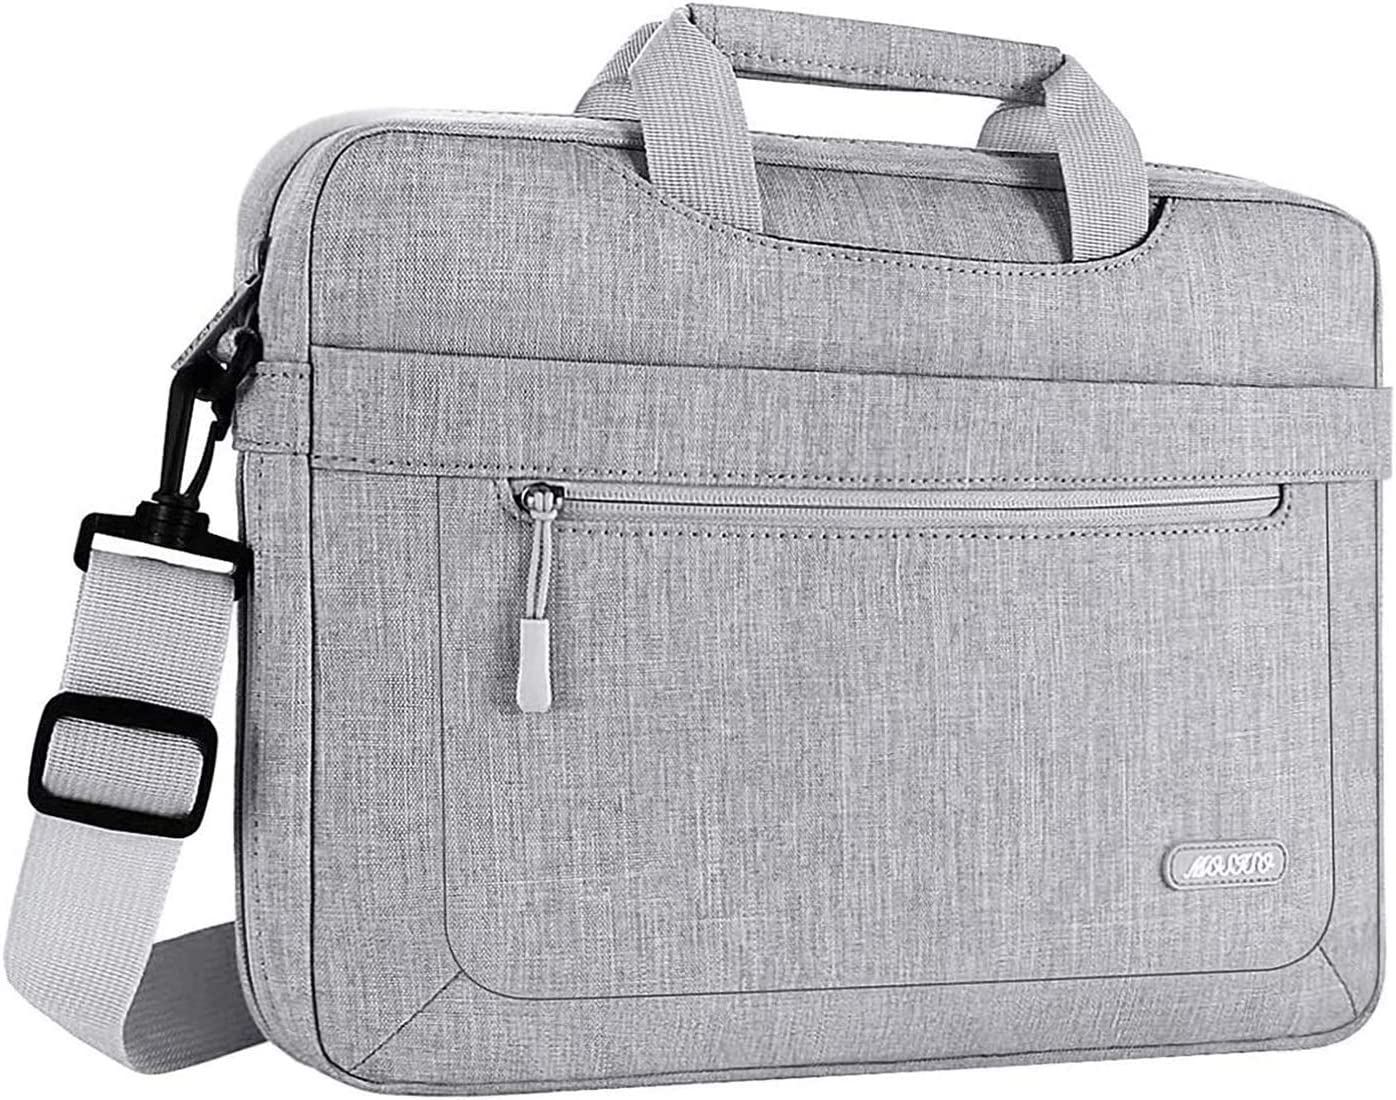 MOSISO Laptop Shoulder Bag Compatible with MacBook Pro 16 inch A2141, 15-15.6 inch MacBook Pro, Notebook, Polyester Messenger Carrying Briefcase Sleeve with Adjustable Depth at Bottom, Light Gray